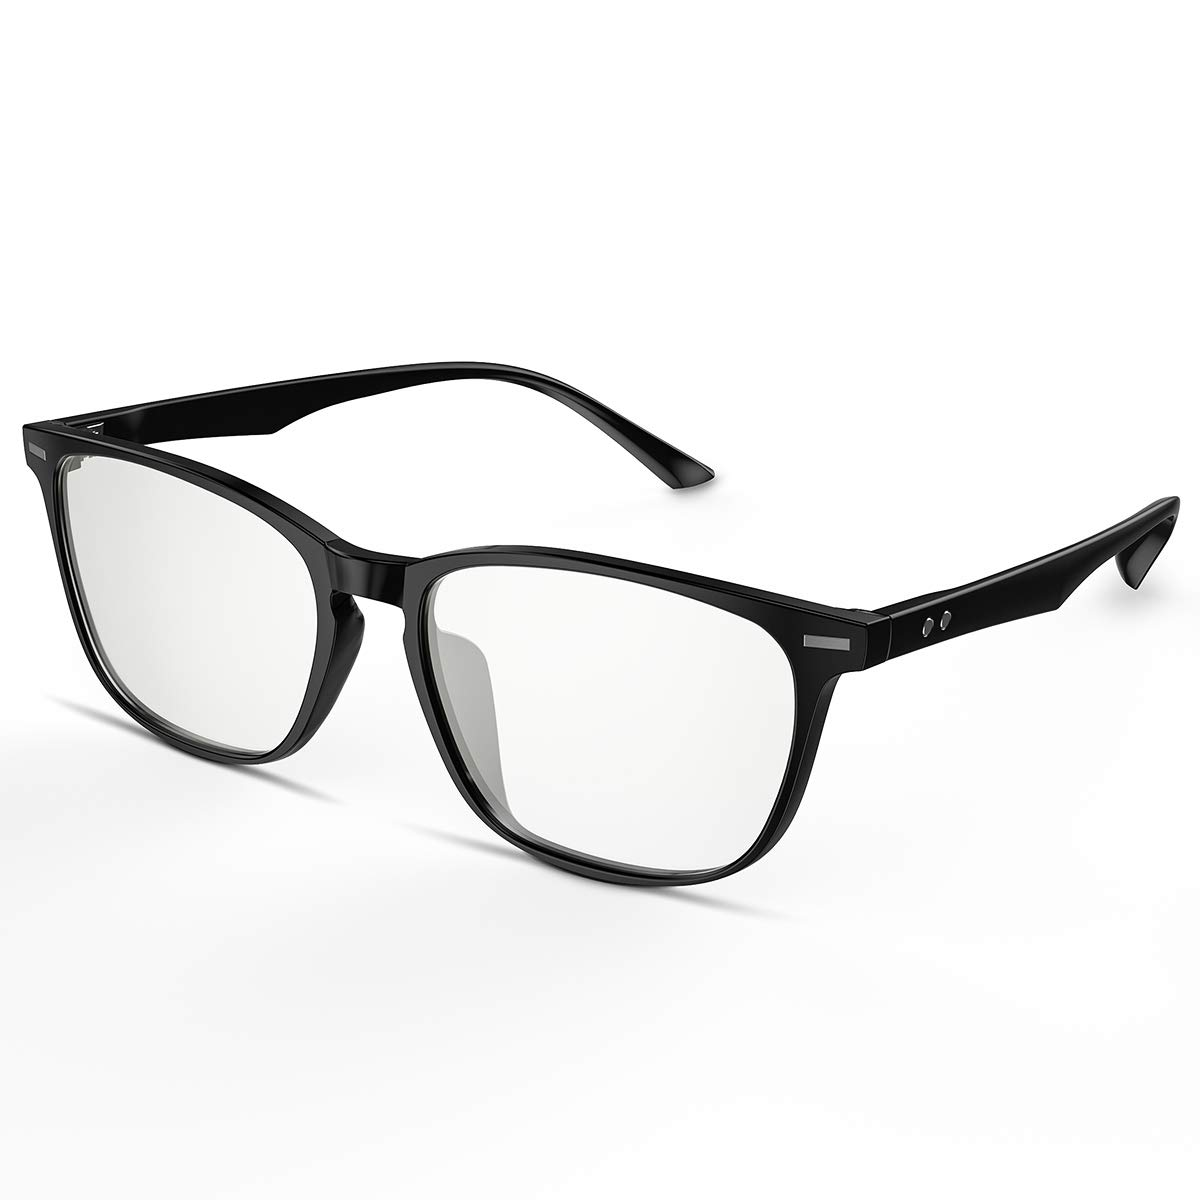 Blue Light Blocking Glasses-BEASEN Computer Glasses for Women and Man,Block UV Light to Reduce Eye Strain and Gaming Focus,Black Energy Headaches Migraines,Help Improve Productivity